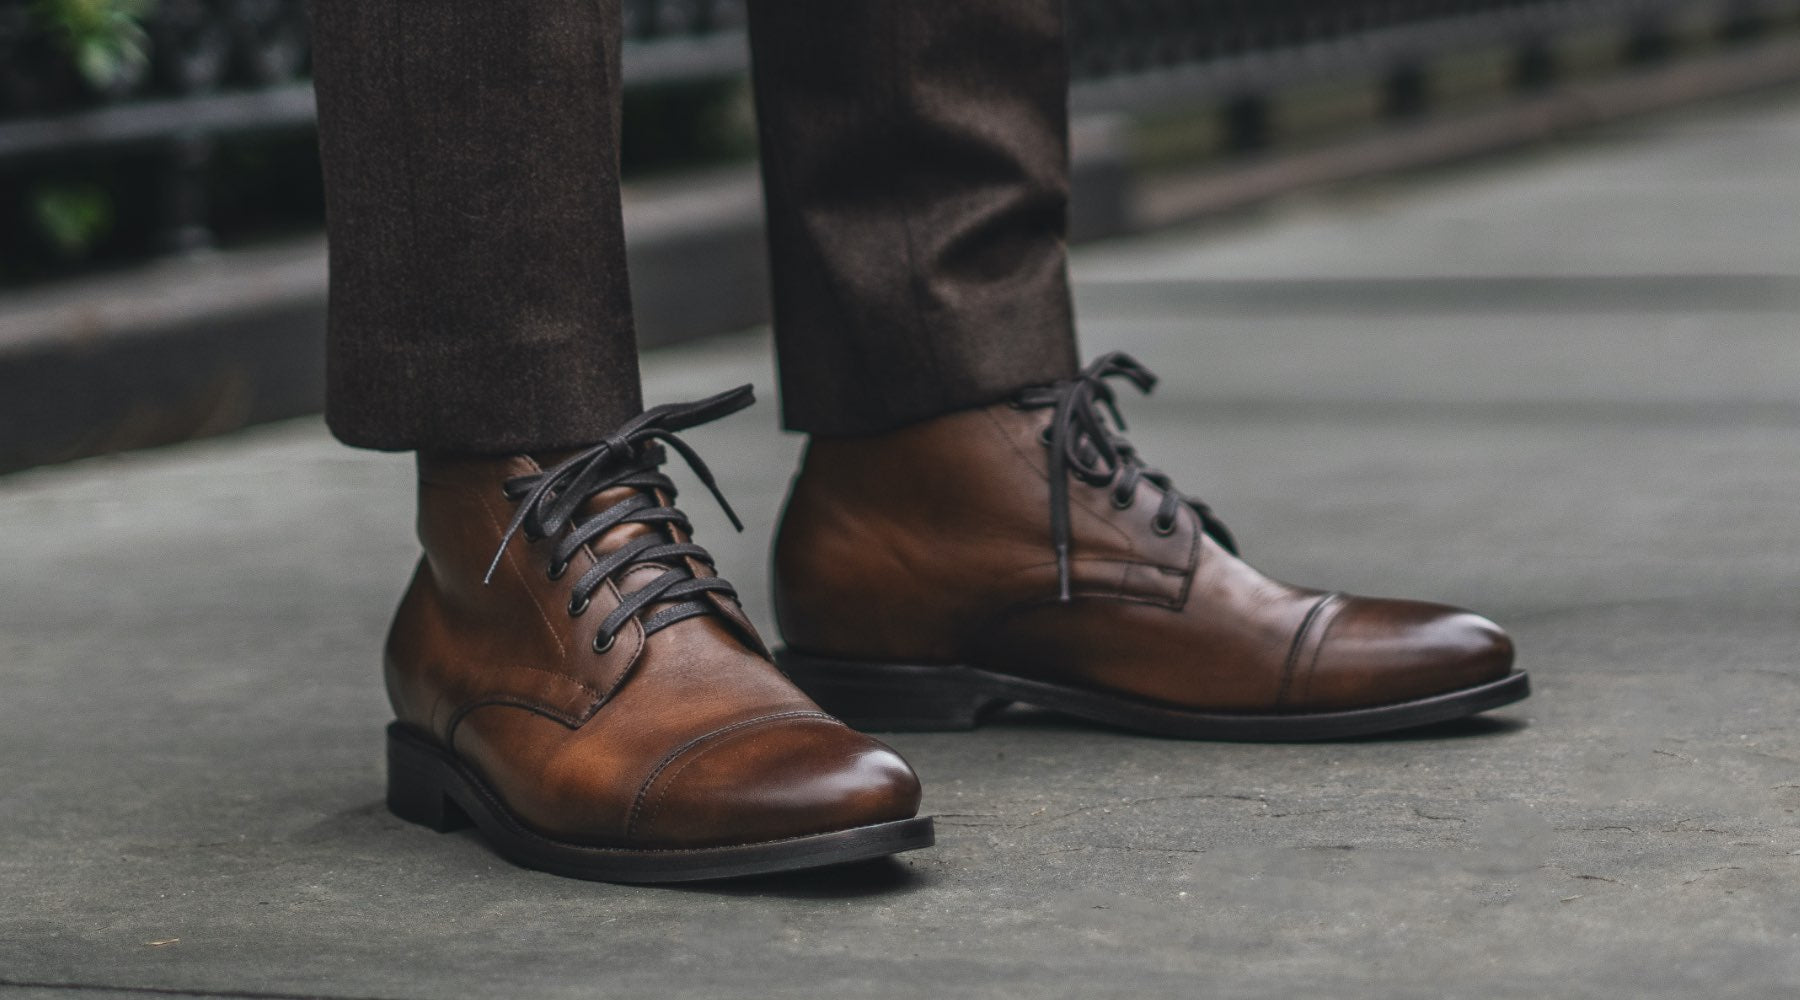 The Best Men's Dress Boots: The Cadet Lace-Up